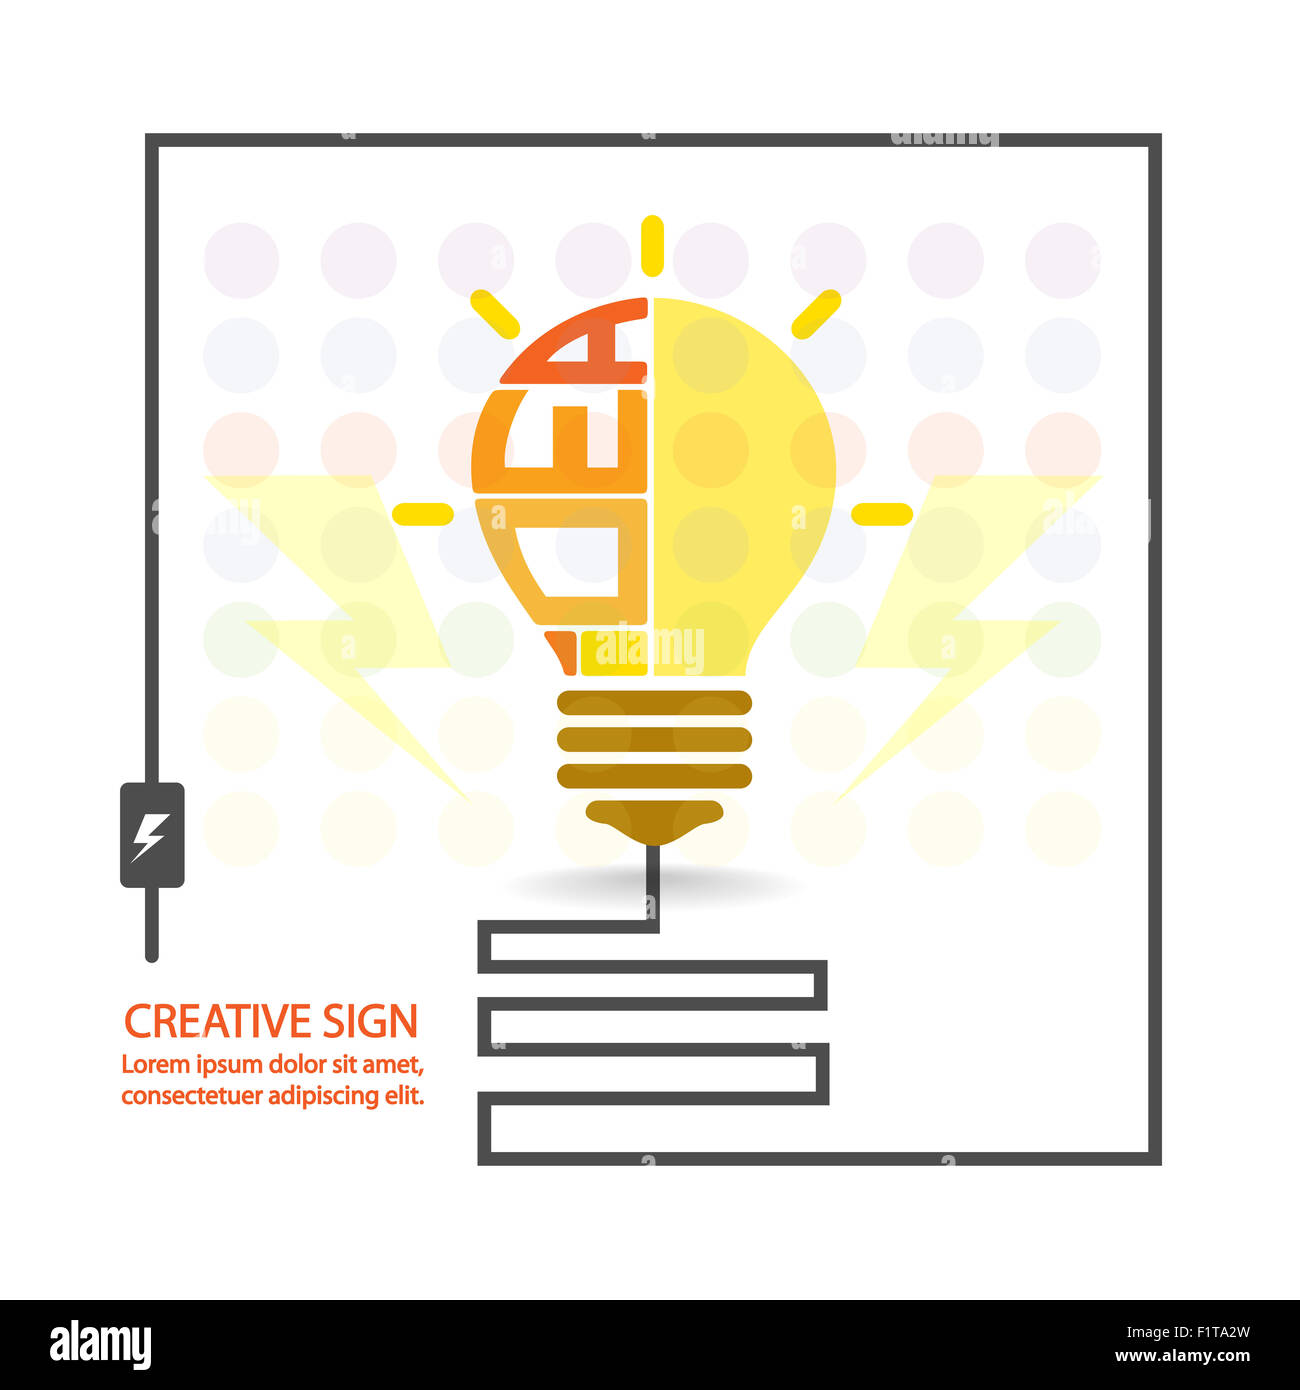 creative light bulb,saving sign,ideas concepts,business background.vector illustration Stock Photo